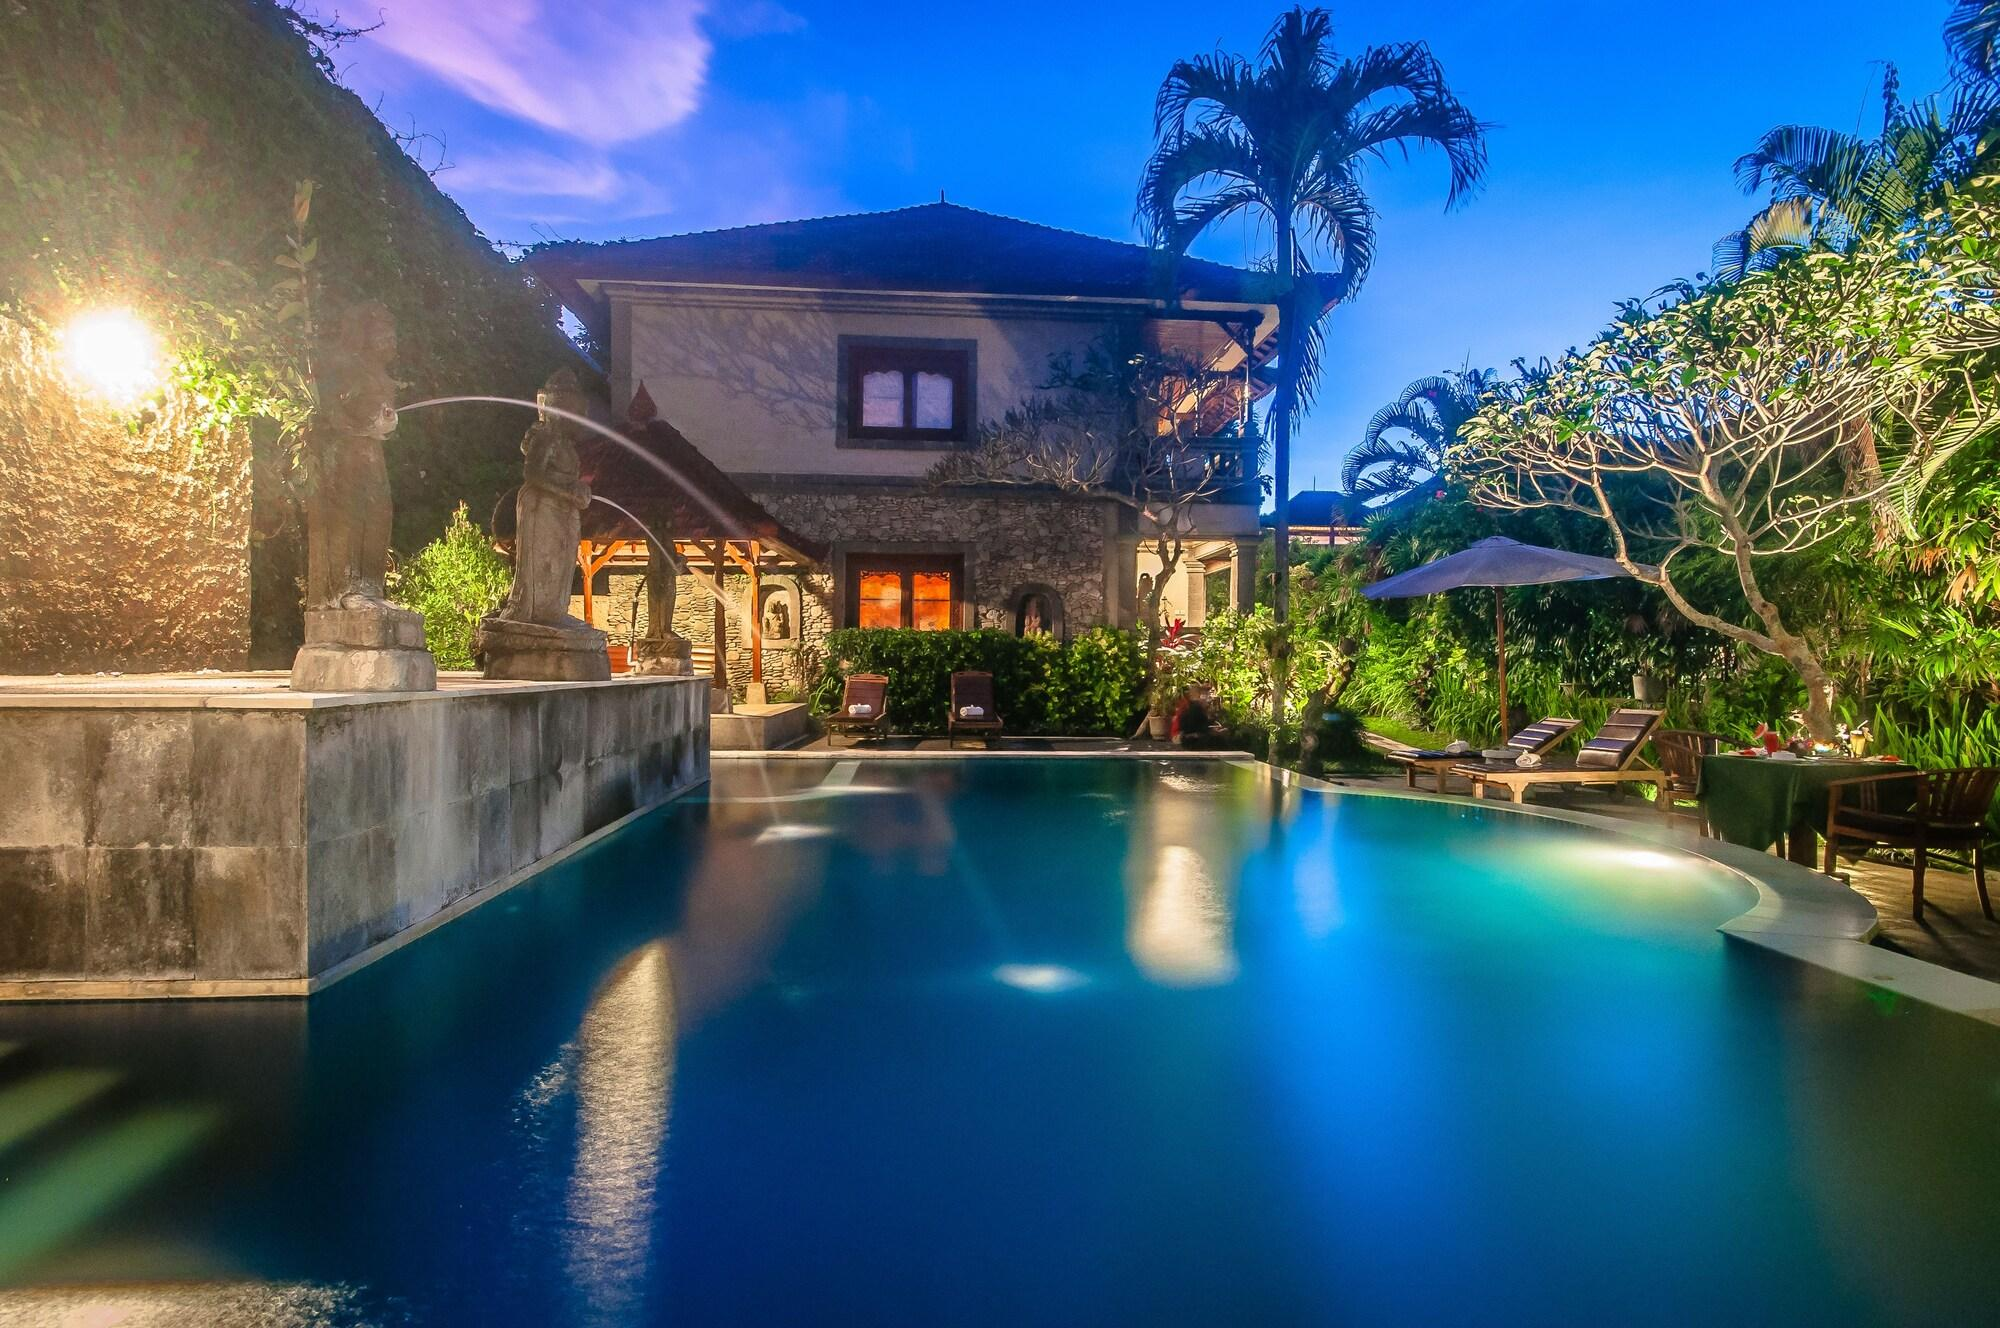 Sahadewa Resort & Spa, Ubud